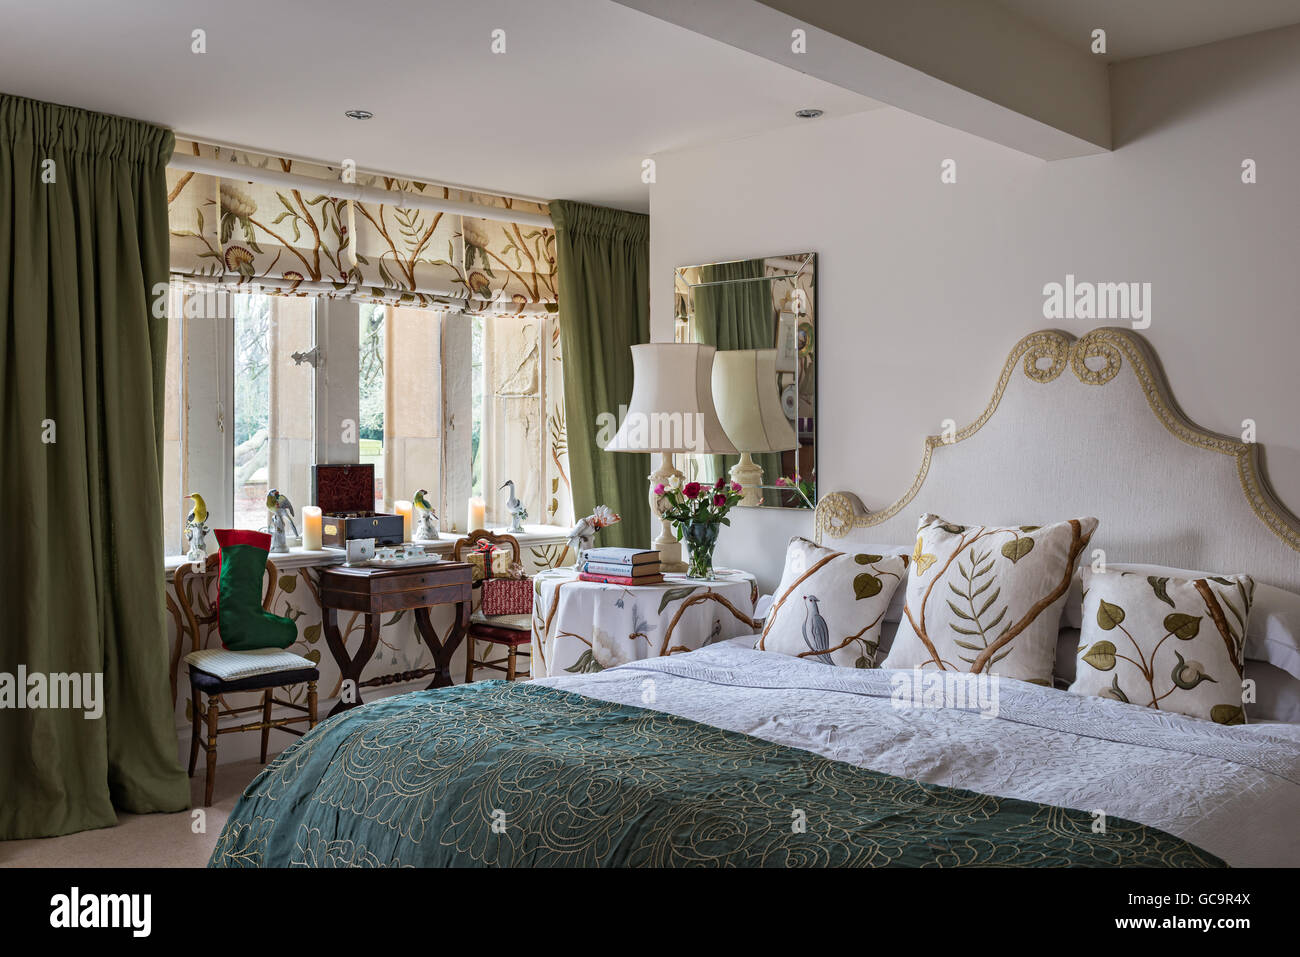 Coordinated fabric and wallpaper in master bedroom of Grade I listed ...